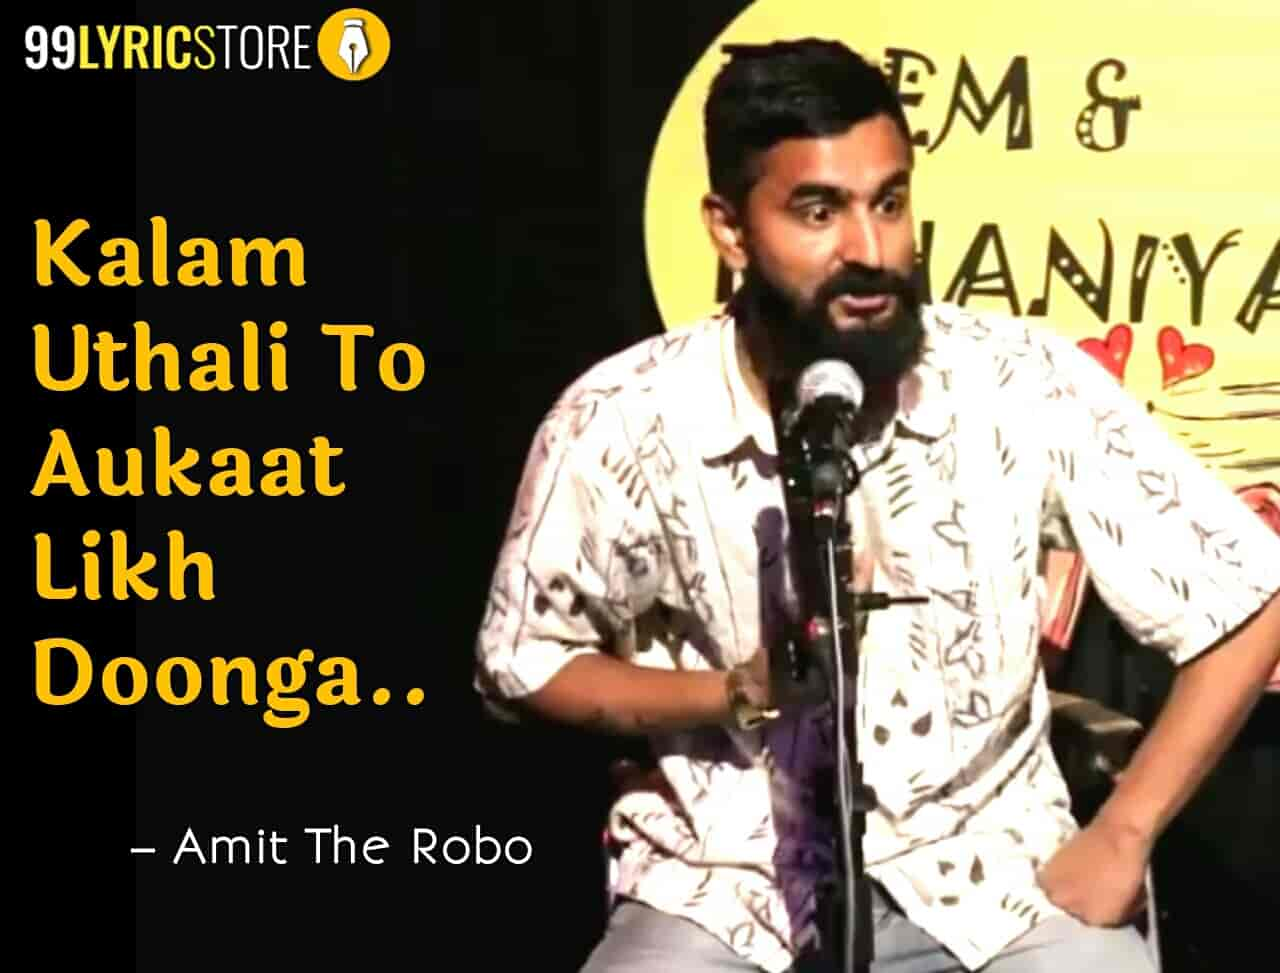 This beautiful poetry 'Kalam Uthali To Aukaat Likh Doonga' has written and performed by Amit the Robo.